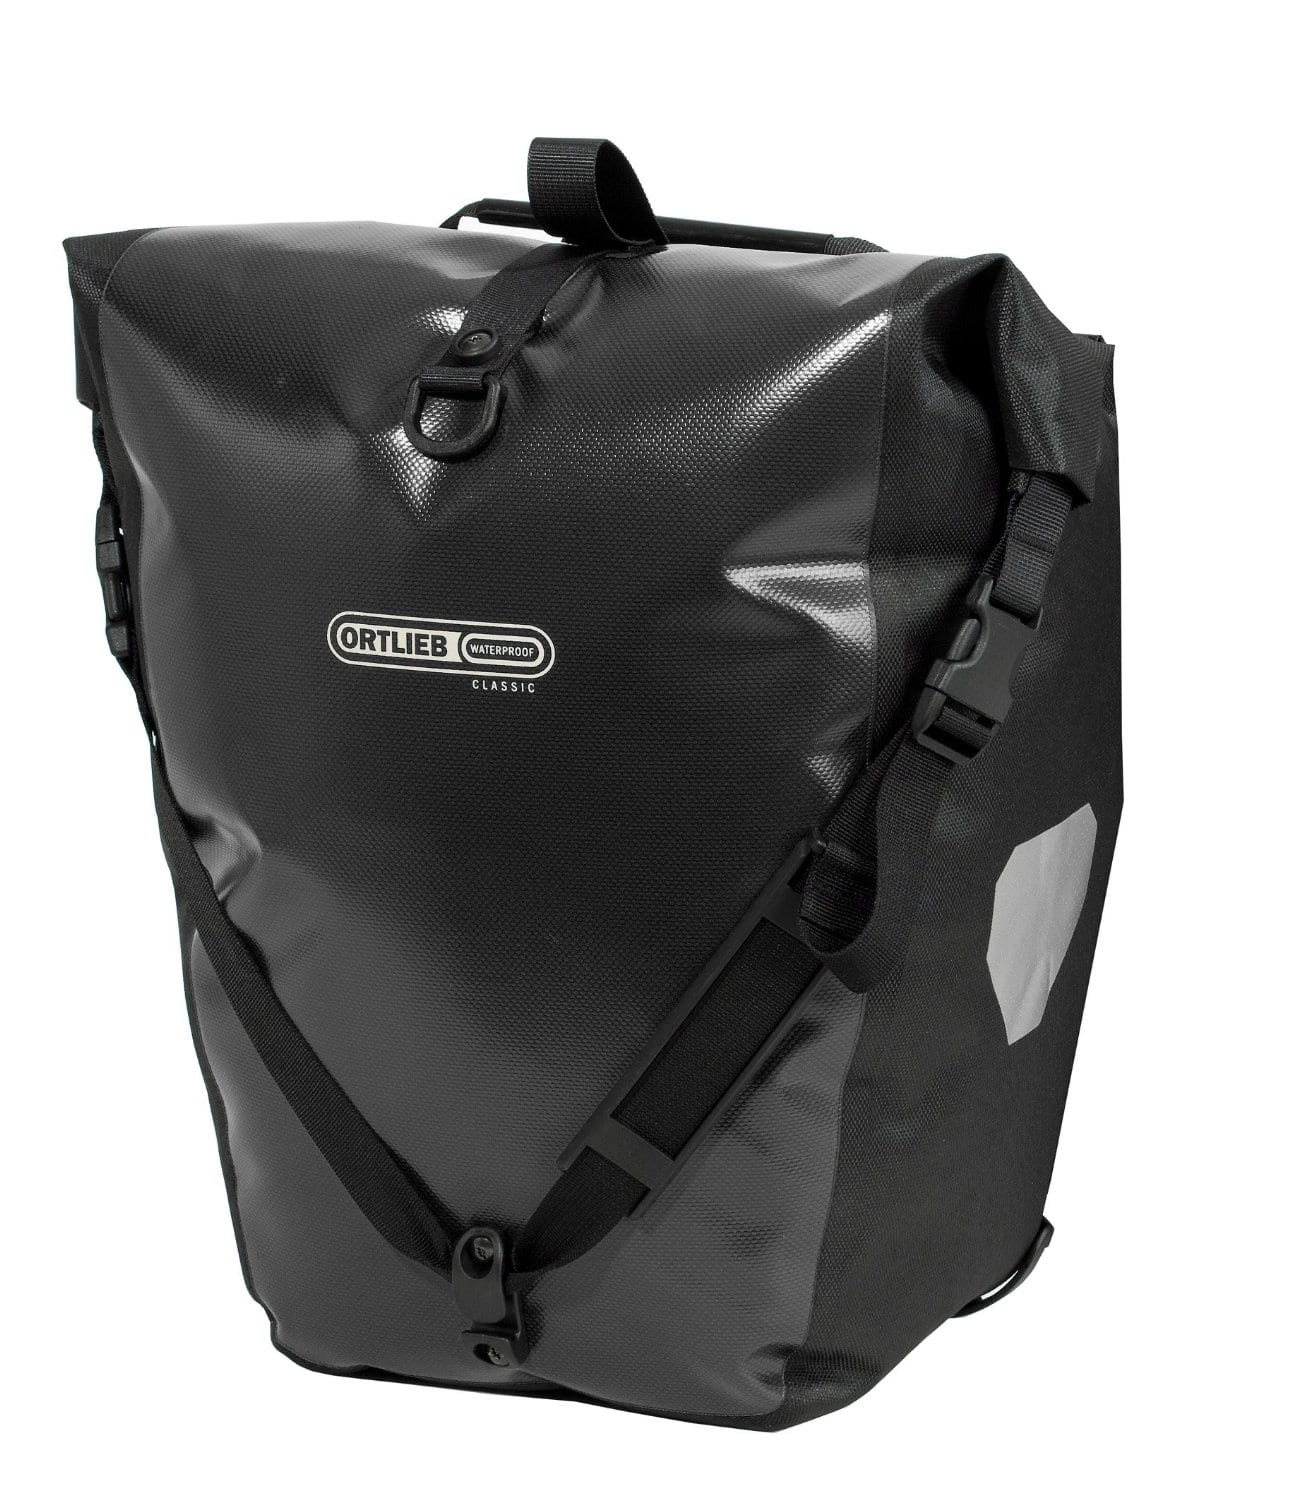 Ortleib back Roller Classic Panniers